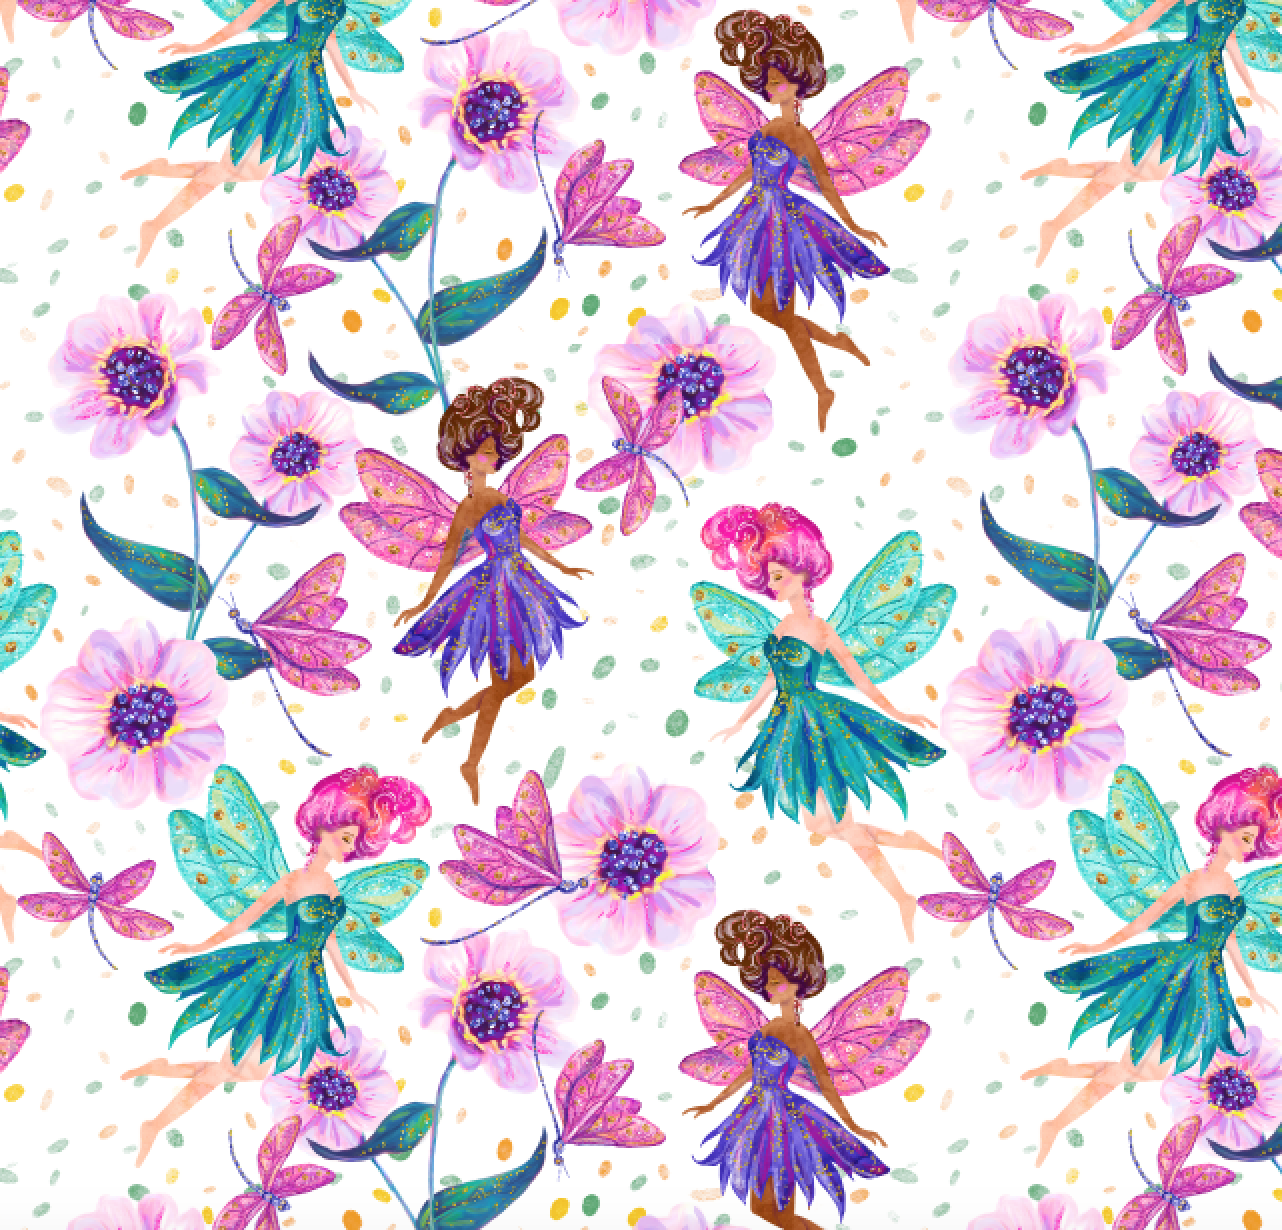 IN STOCK - Mystical Fairies - WOVEN COTTON